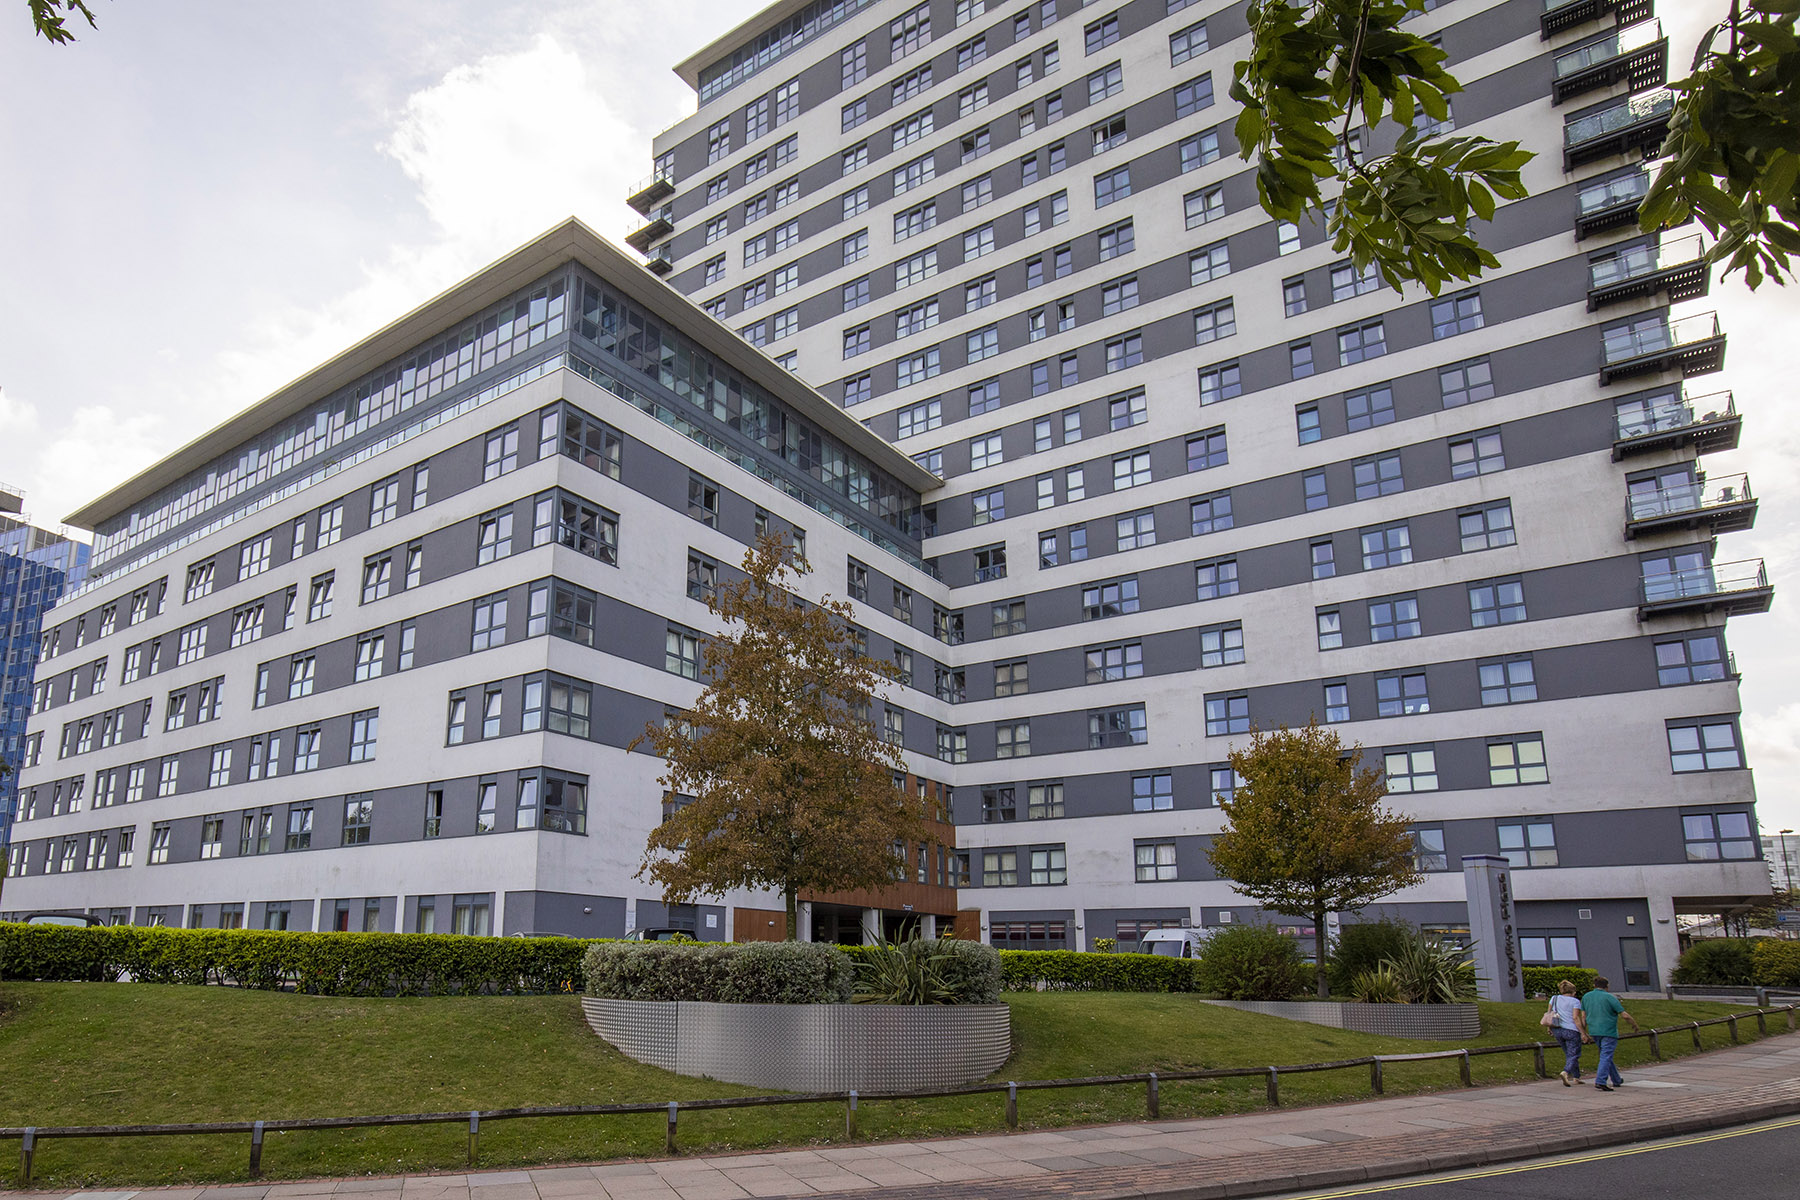 Exterior at Flexi-Let Skyline Plaza Apartments, Centre, Basingstoke - Citybase Apartments